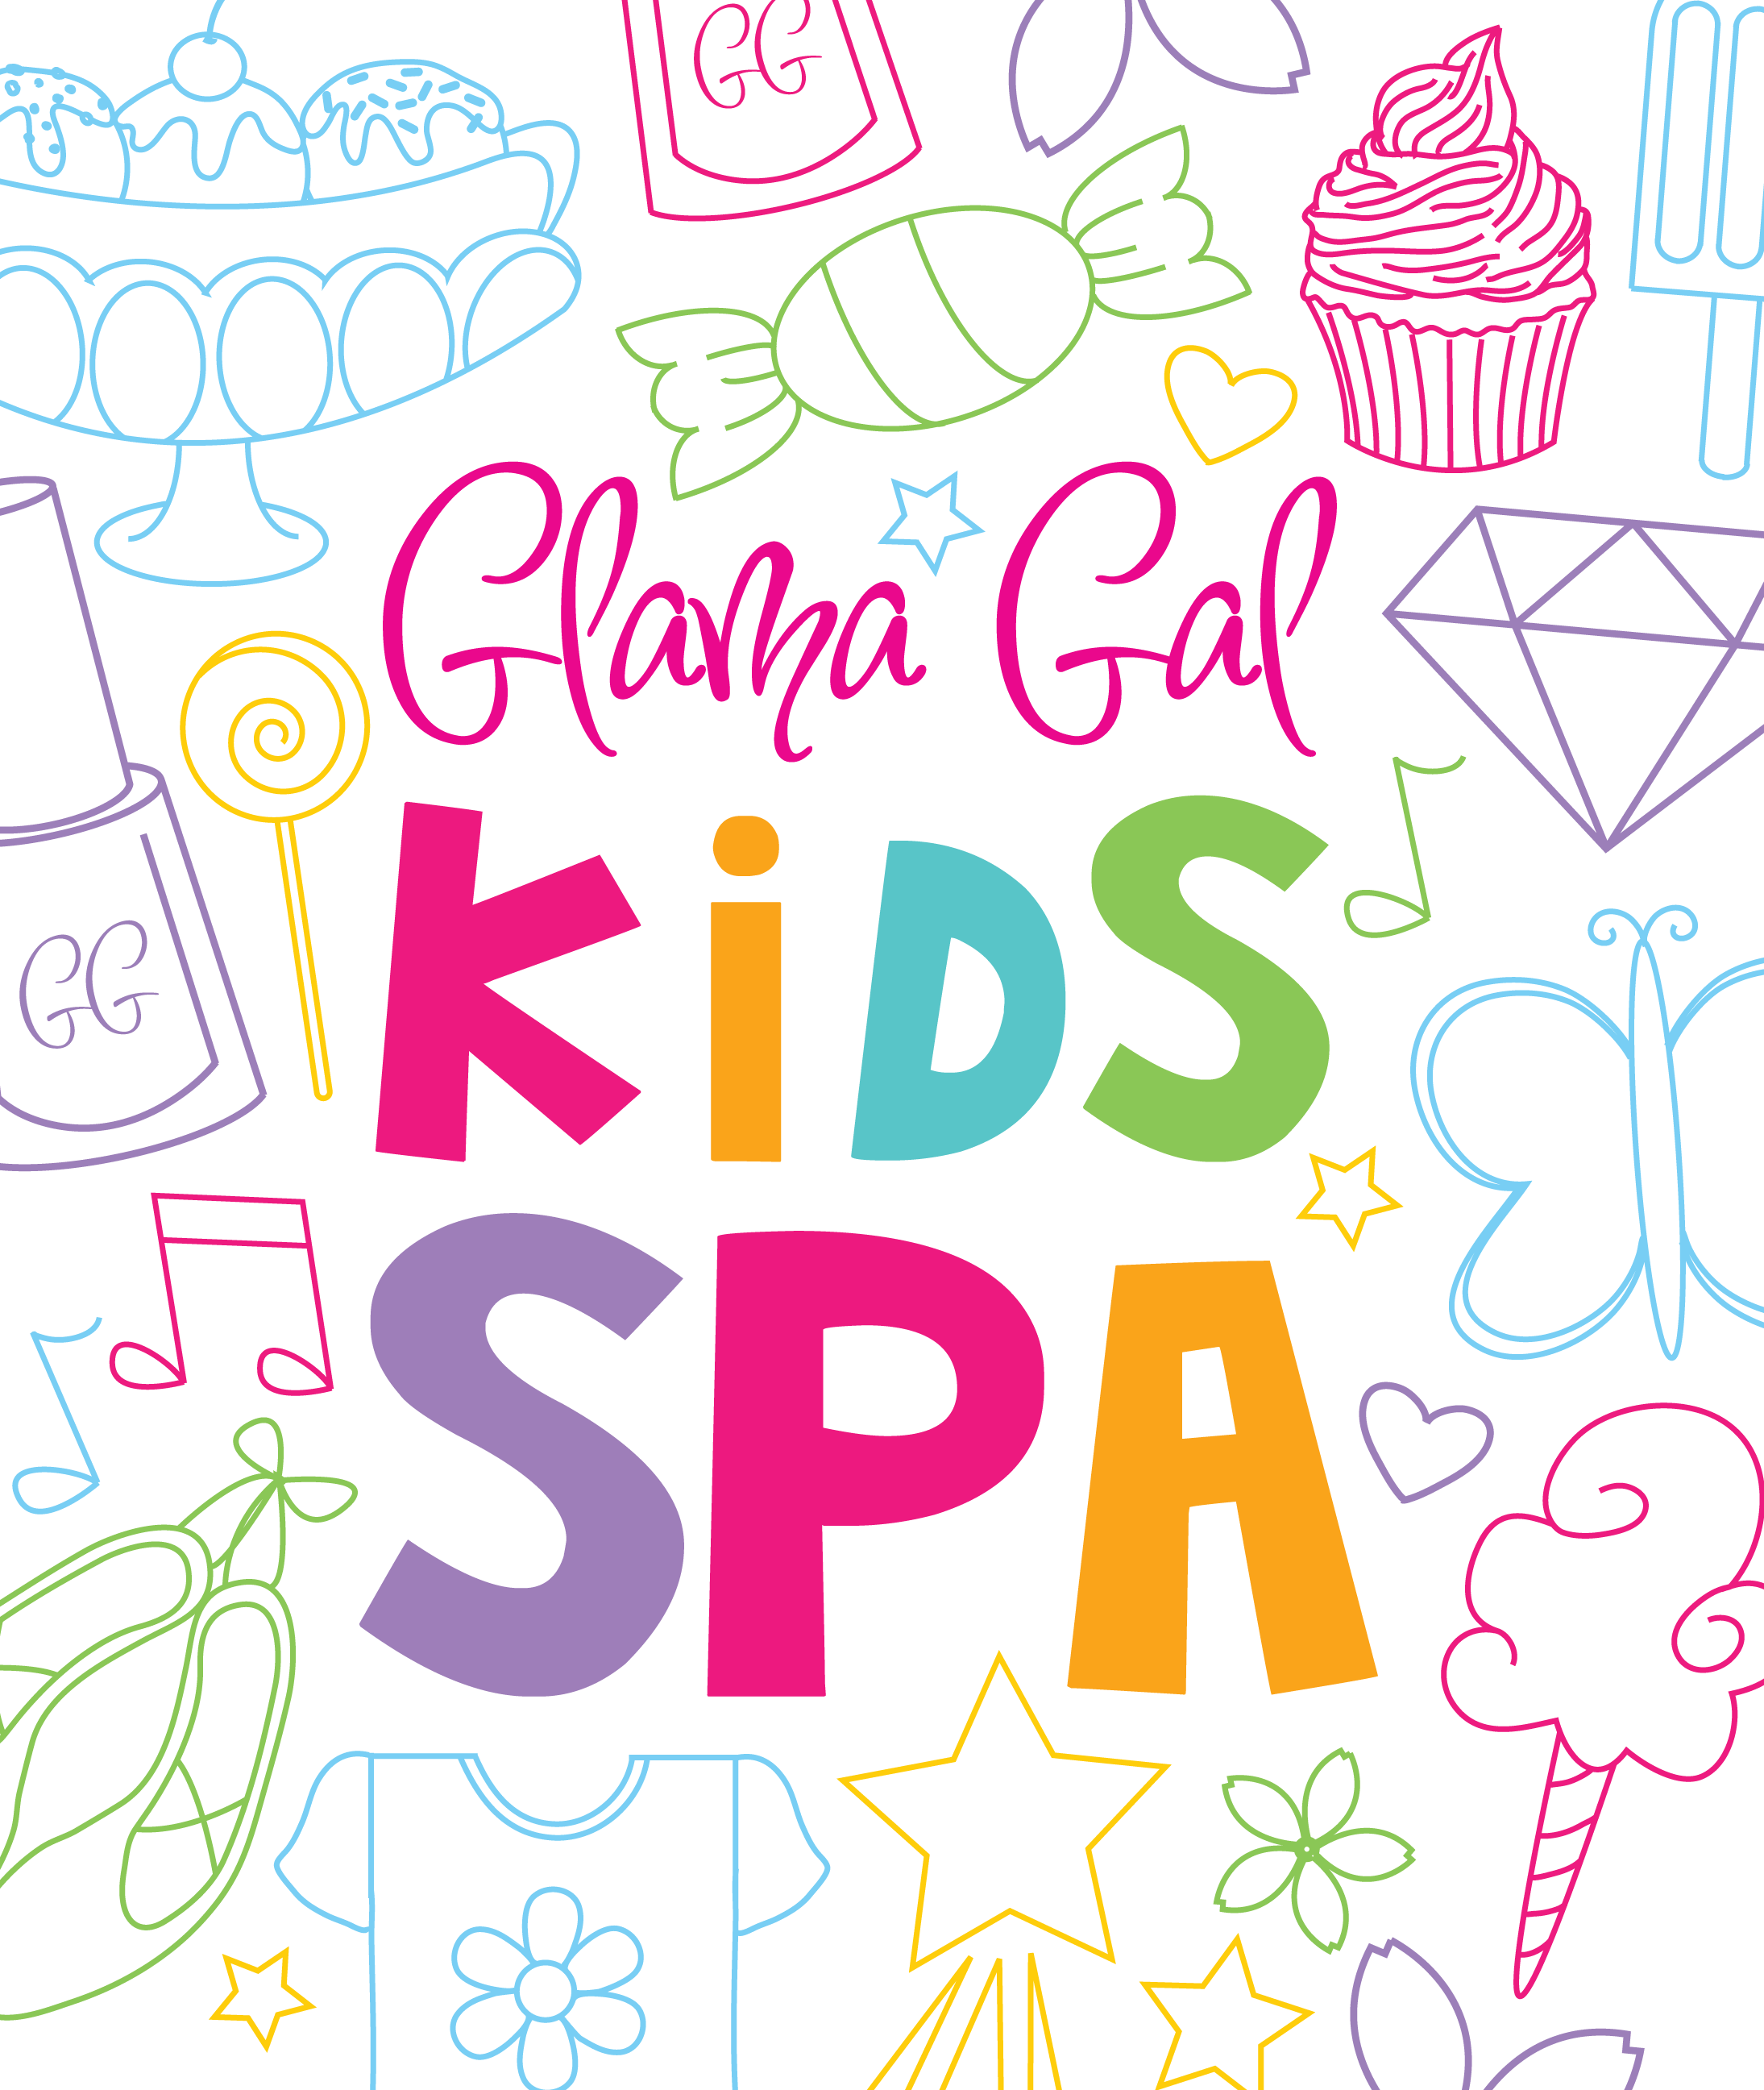 image of Glama Gal Kids Spa Logo